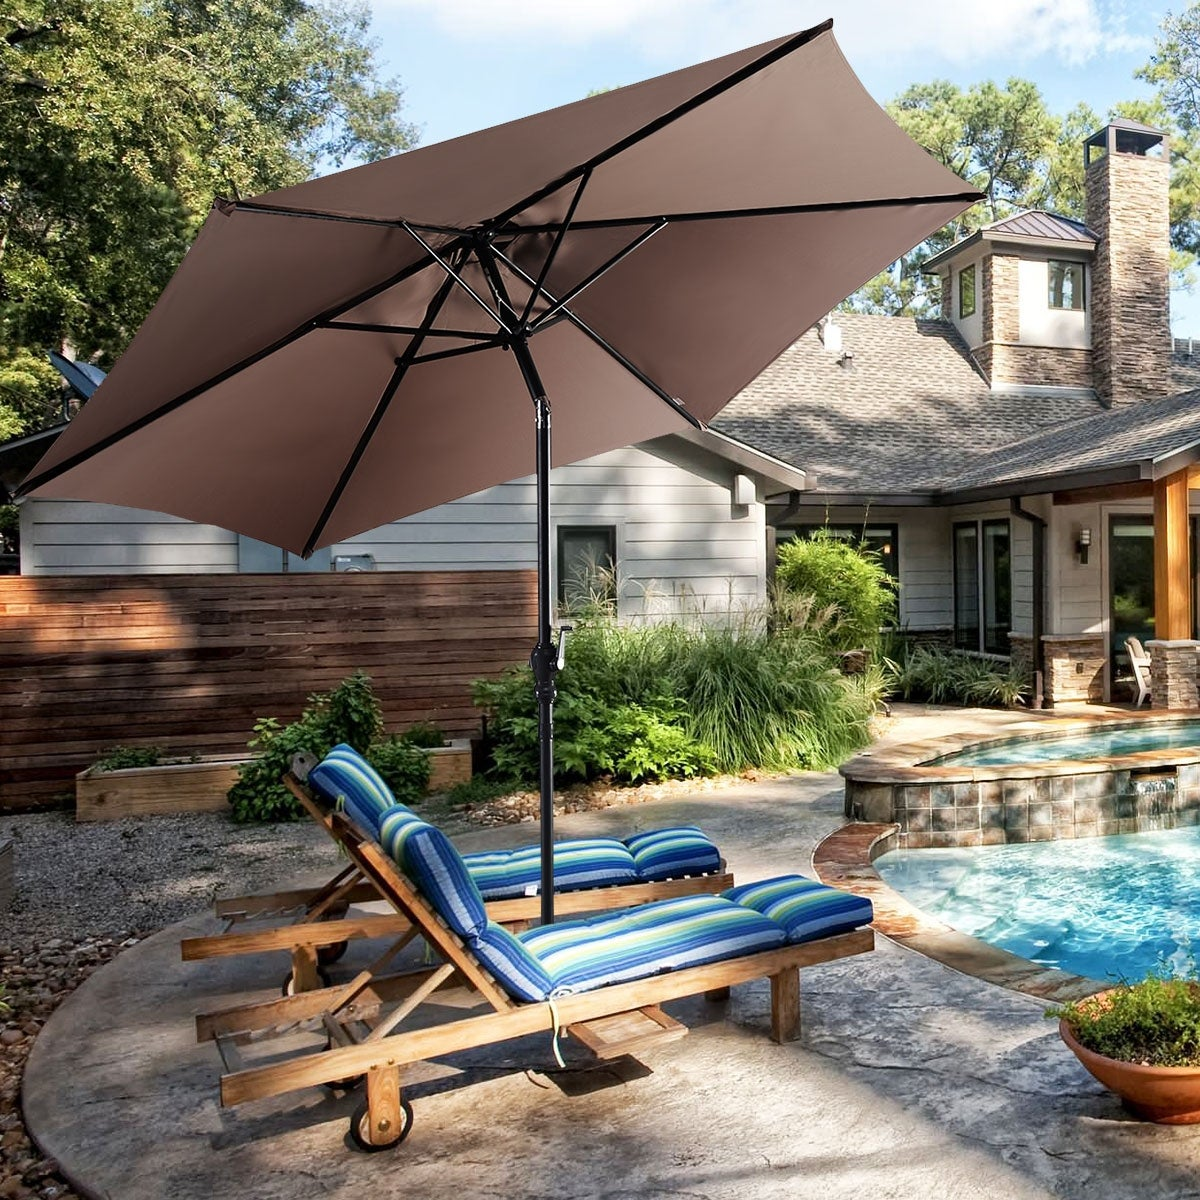 Shop Black Friday Deals On Costway 10ft Patio Umbrella With Crank Tan On Sale Overstock 15935685